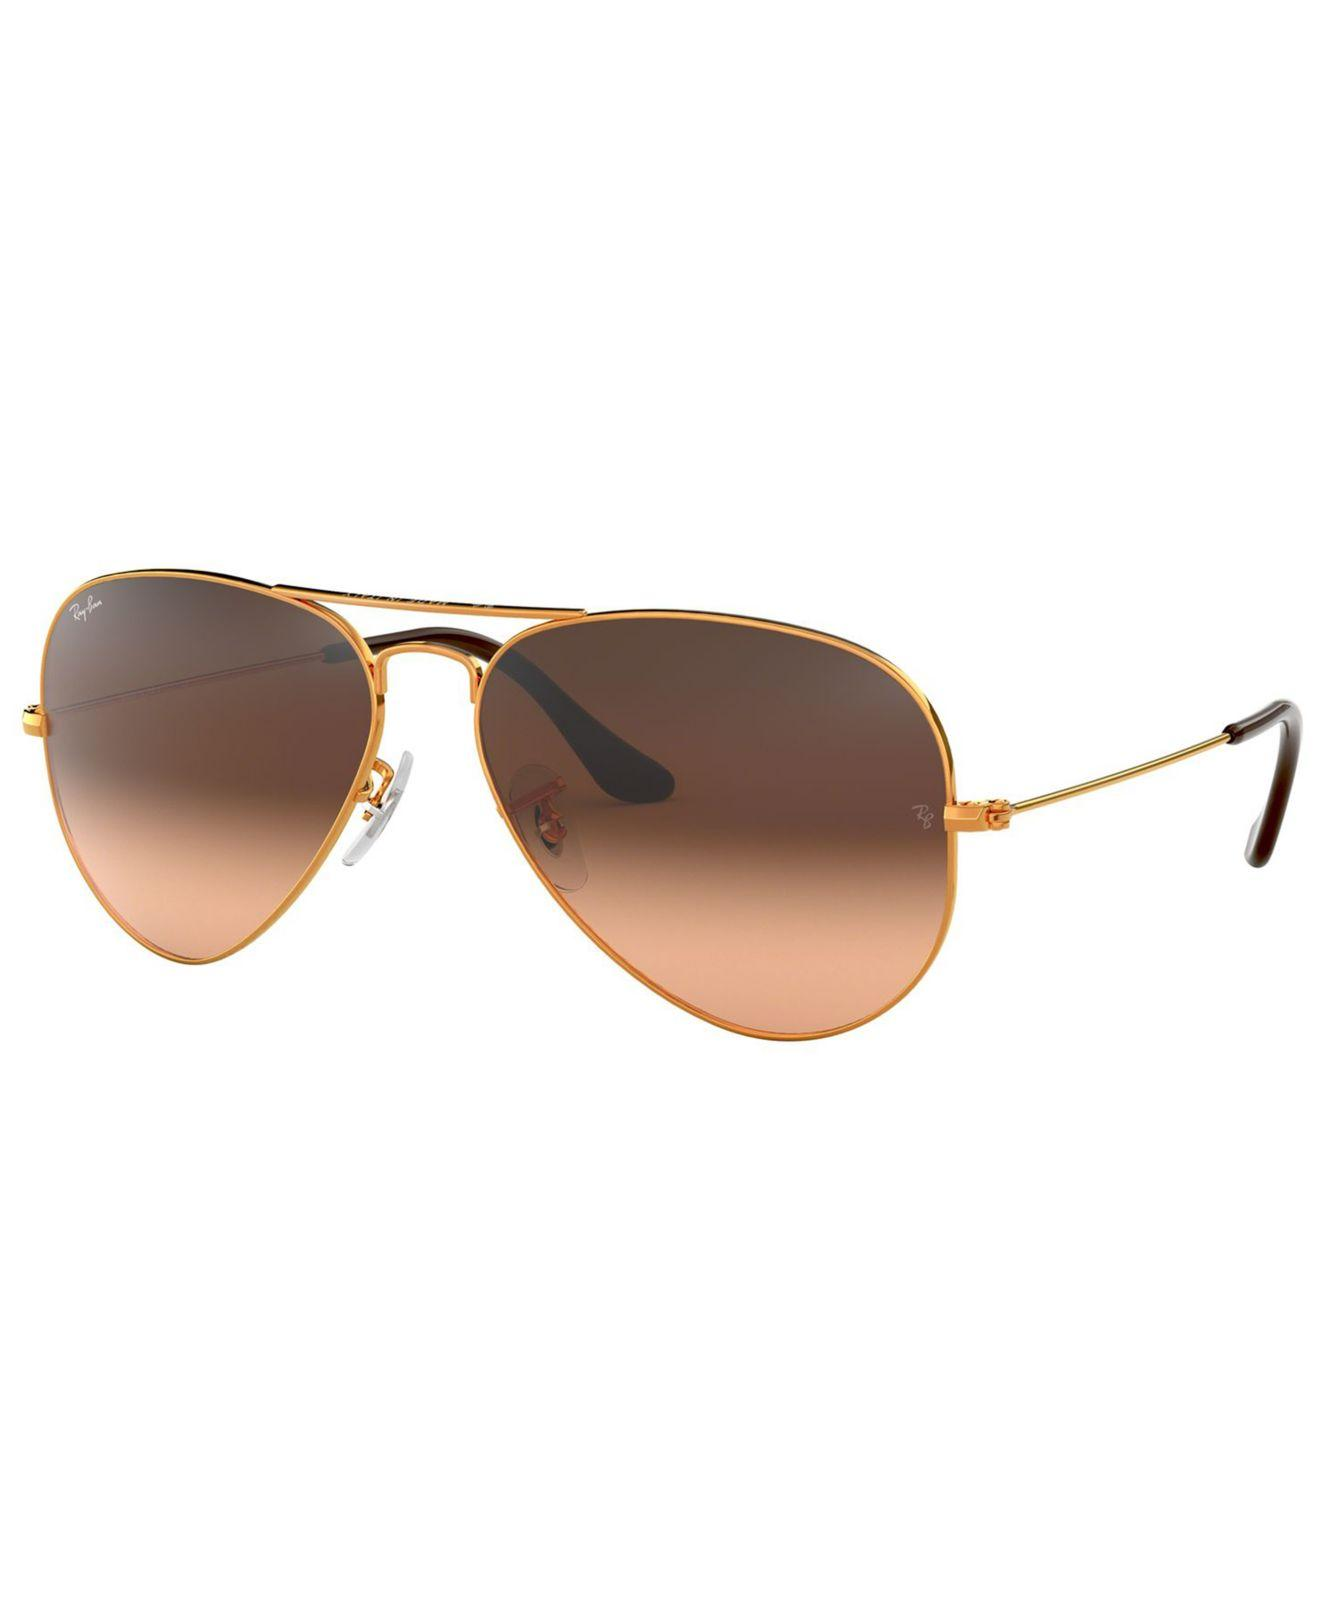 7976dd22167 Ray-Ban. Women s Sunglasses